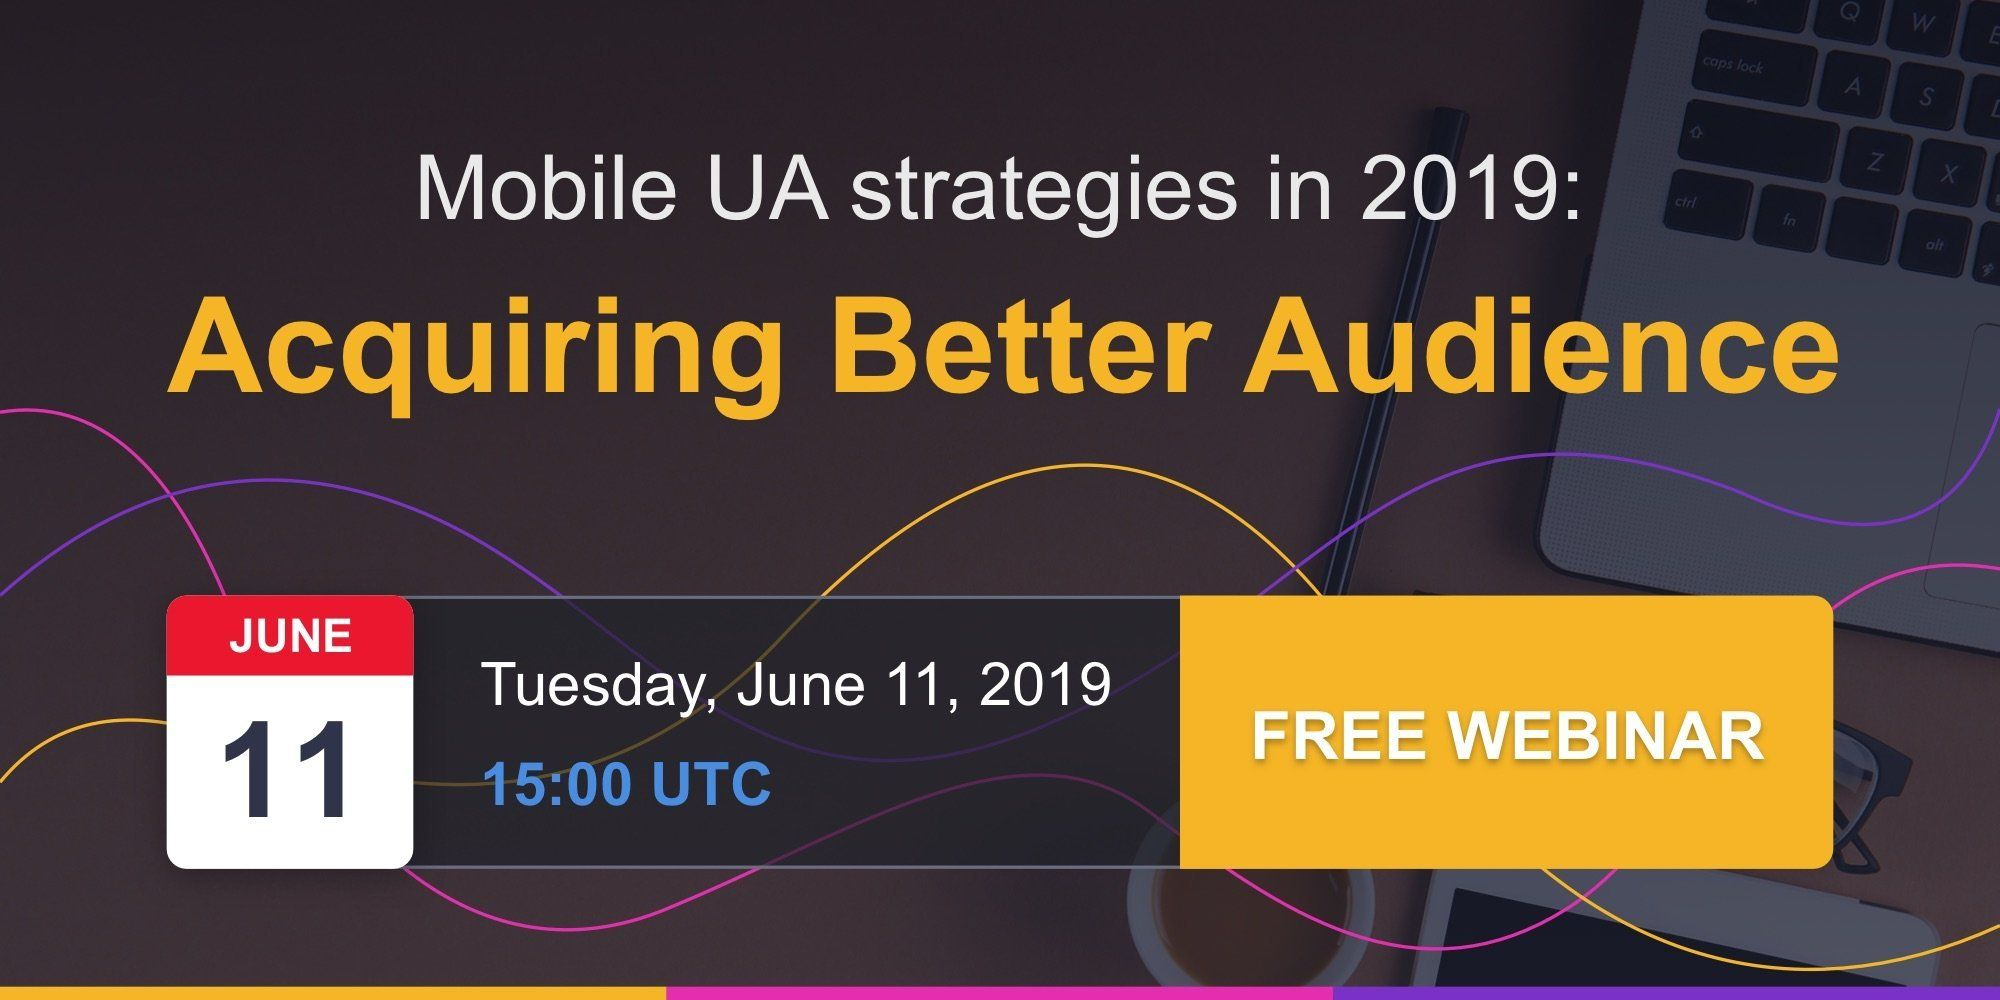 Mobile UA strategies in 2019: acquiring better audience